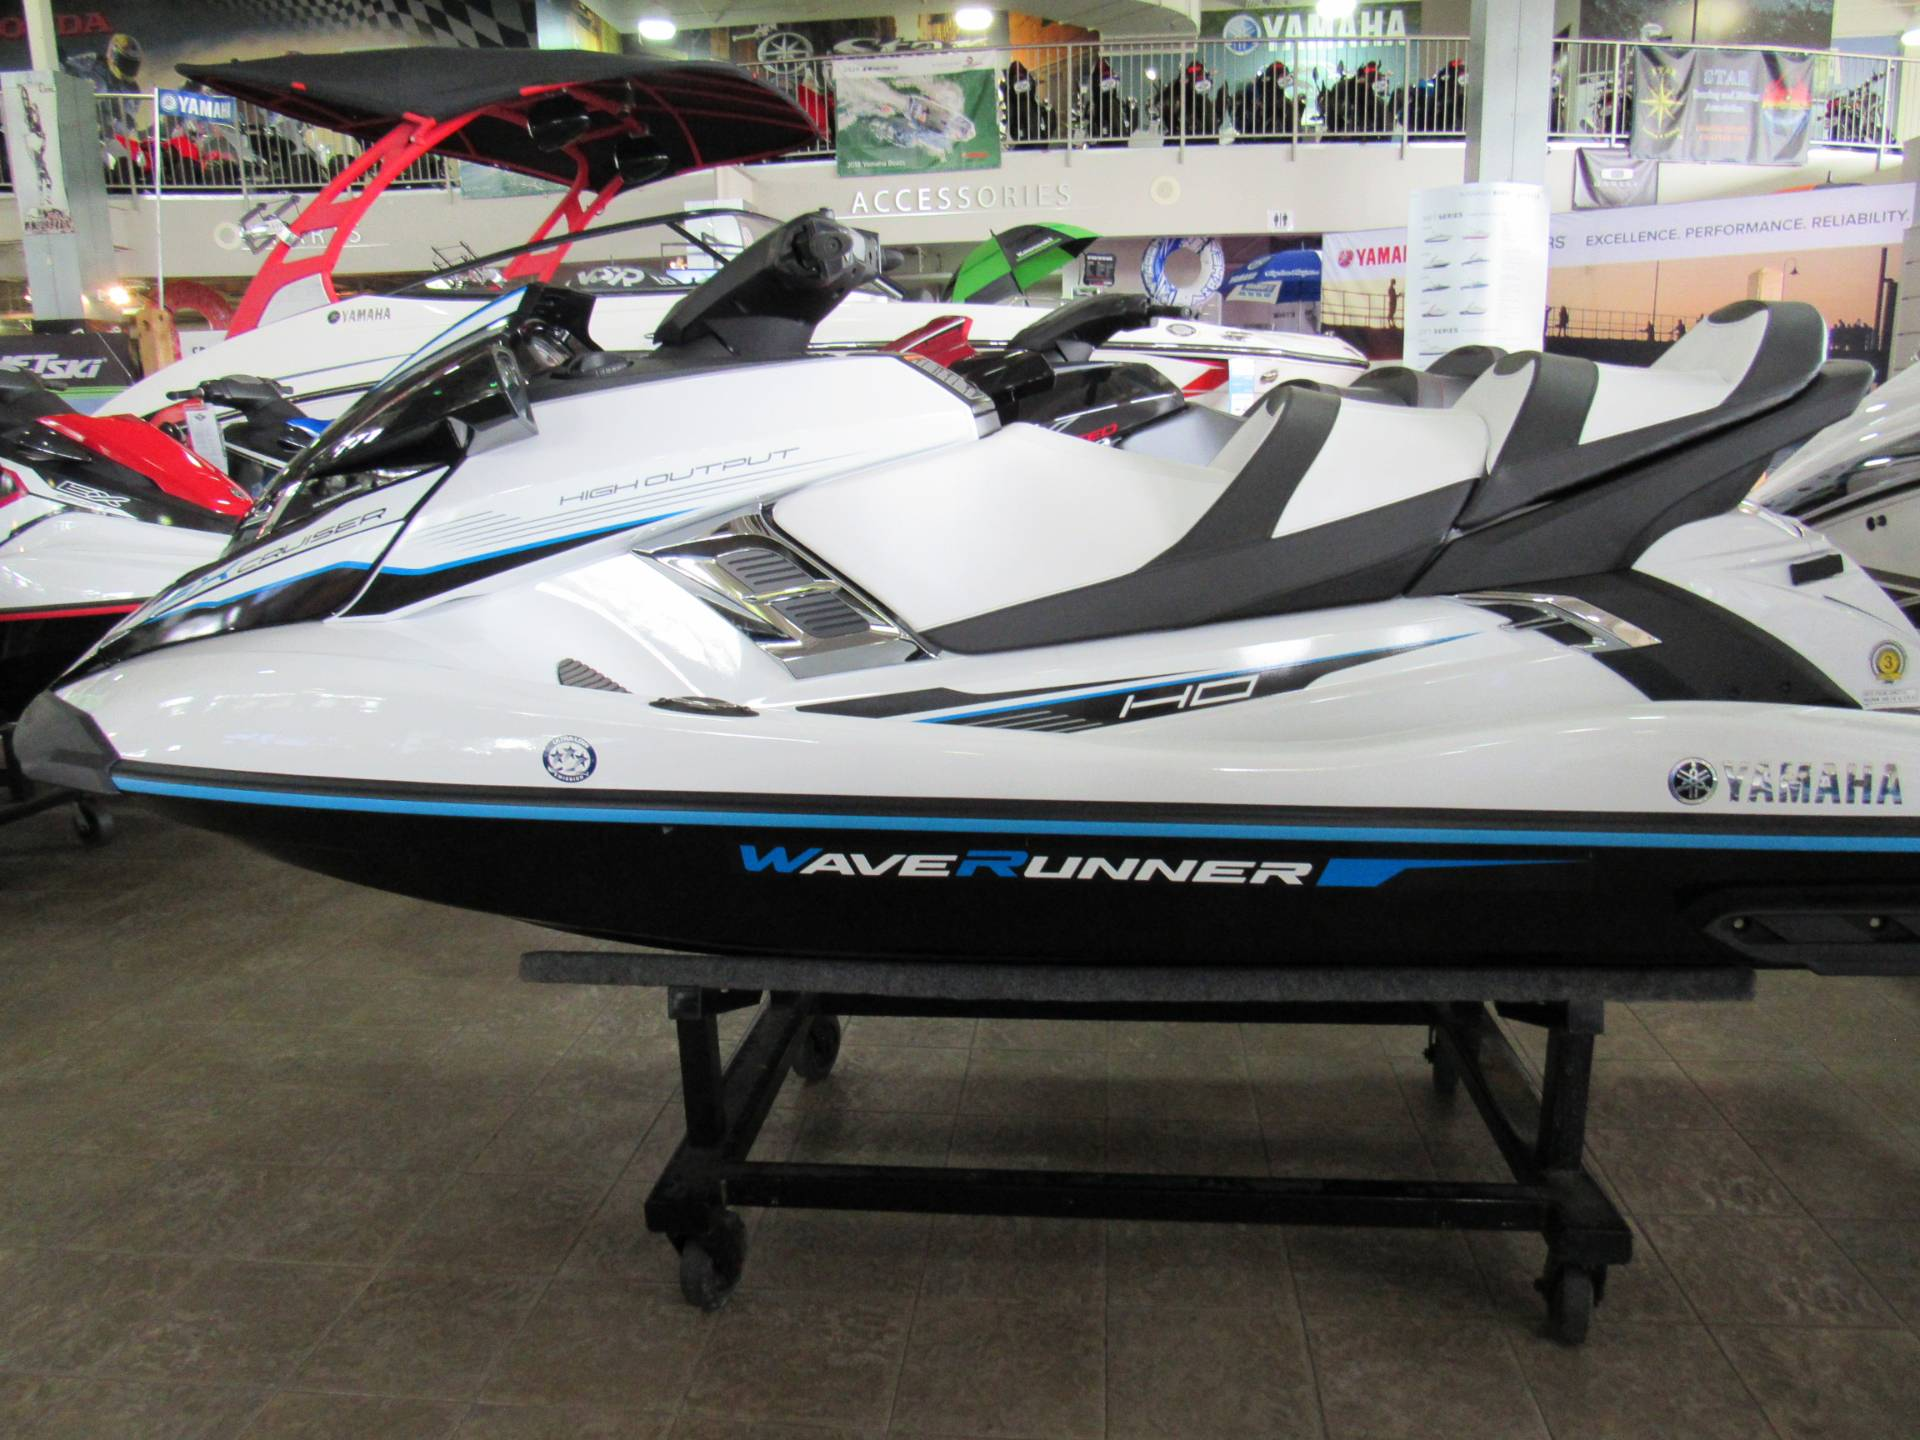 2018 Yamaha FX Cruiser HO for sale 208651